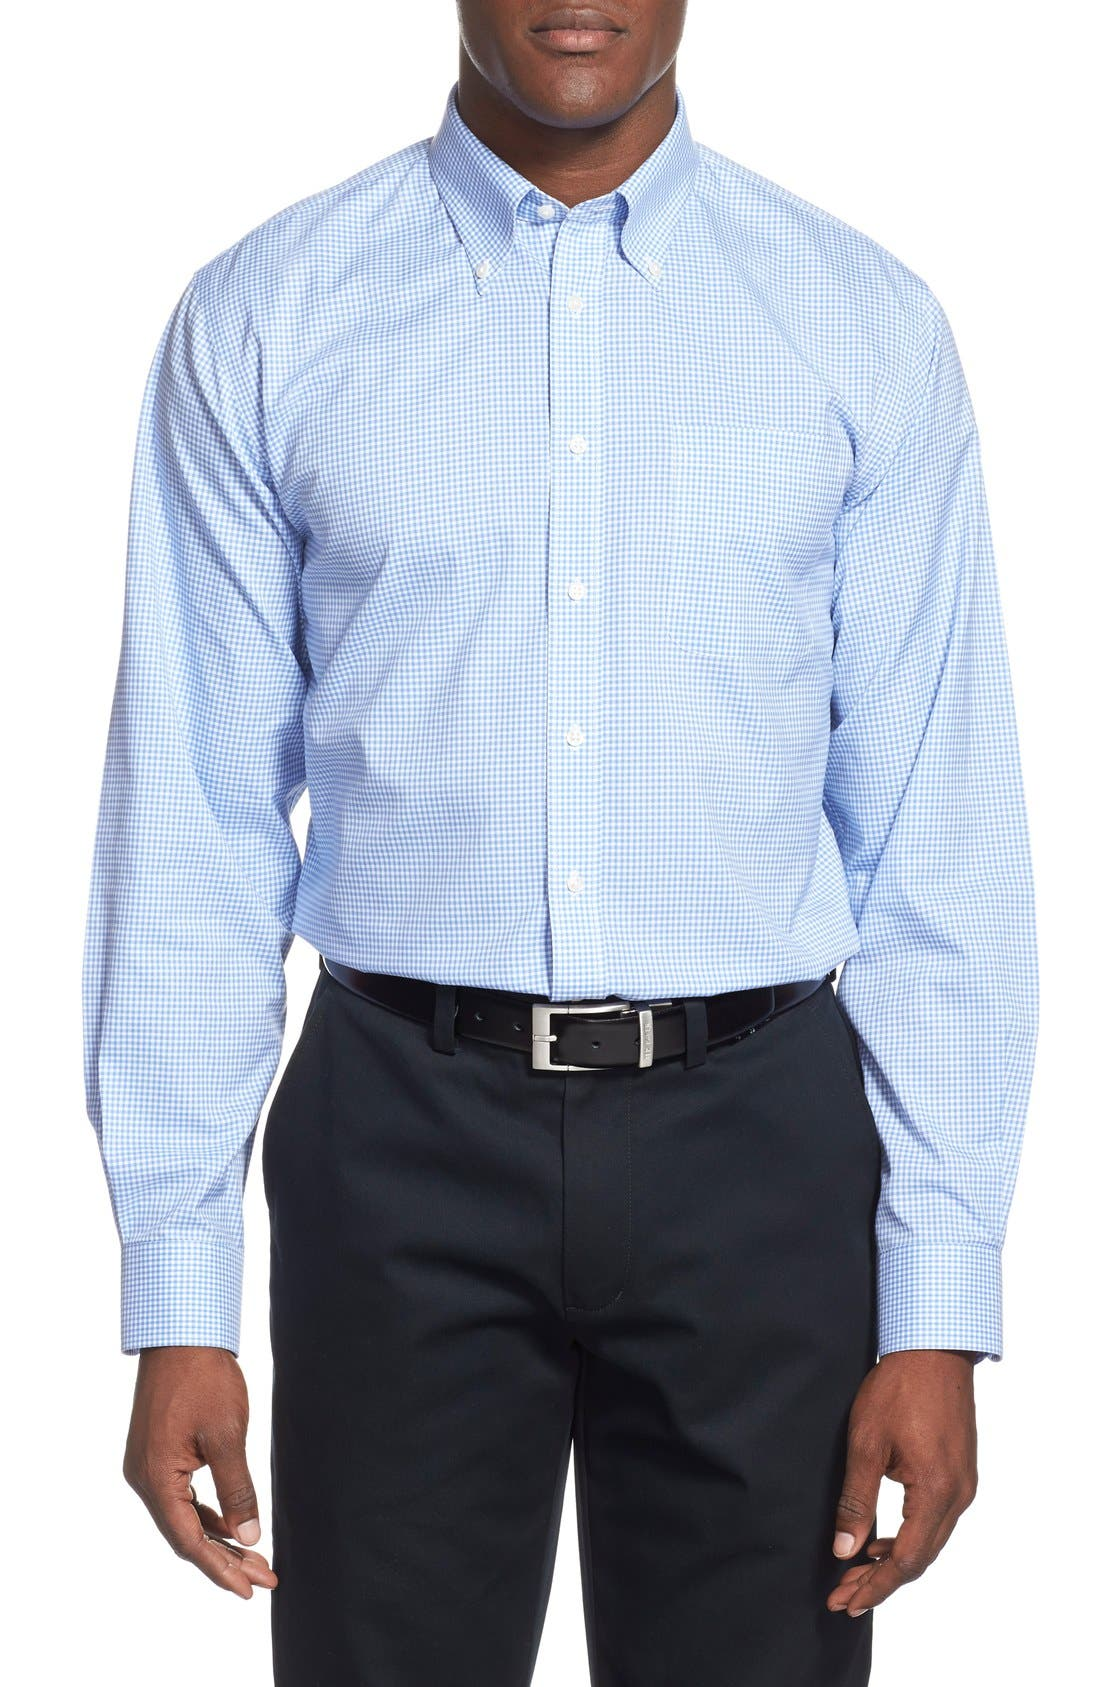 Alternate Image 2  - Nordstrom Men's Shop Smartcare™ Traditional Fit Gingham Dress Shirt